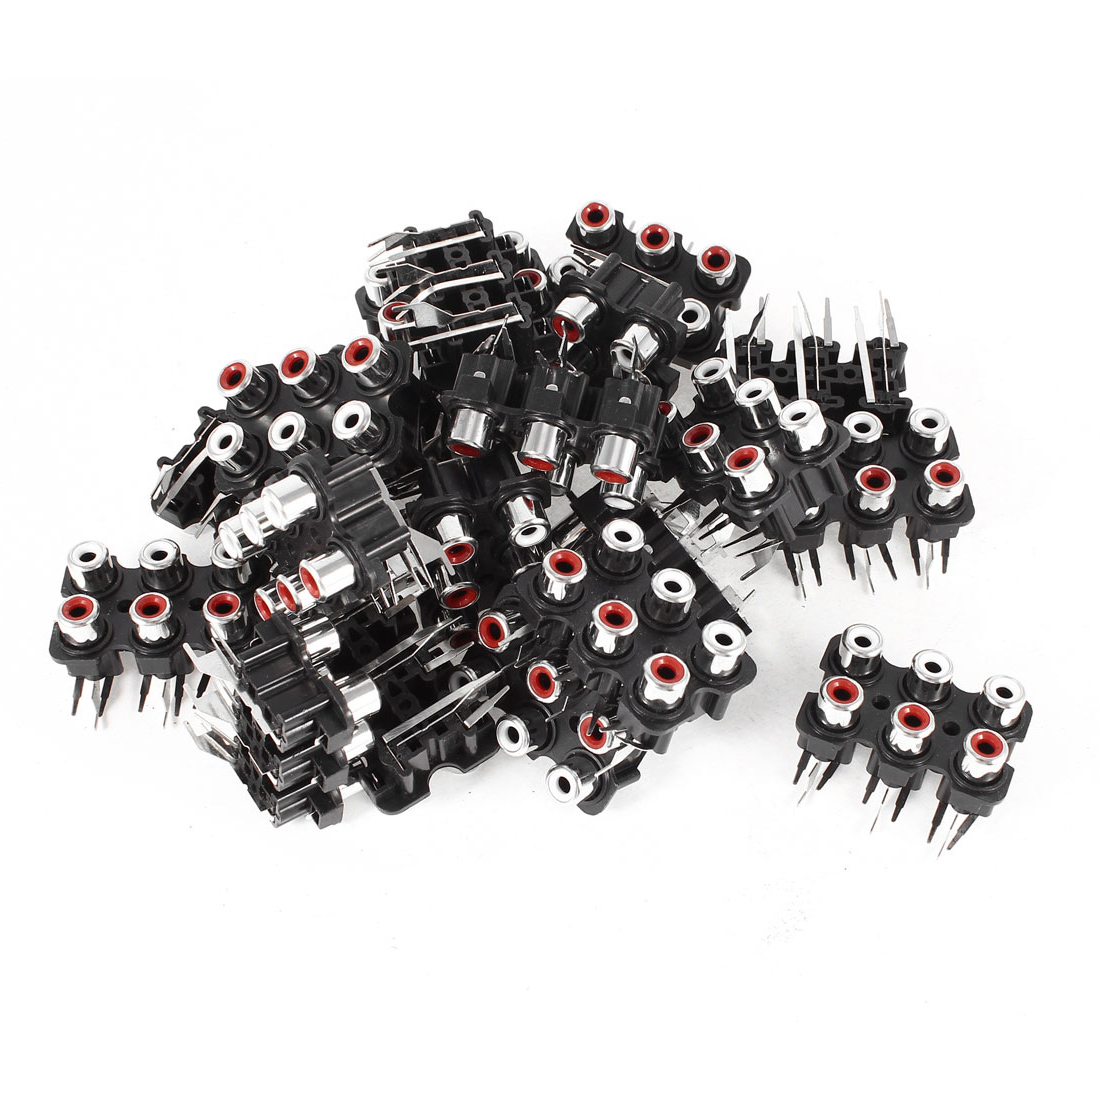 20 Pieces 6-Female RCA PCB Mount Outlet Jack Connector Socket Black